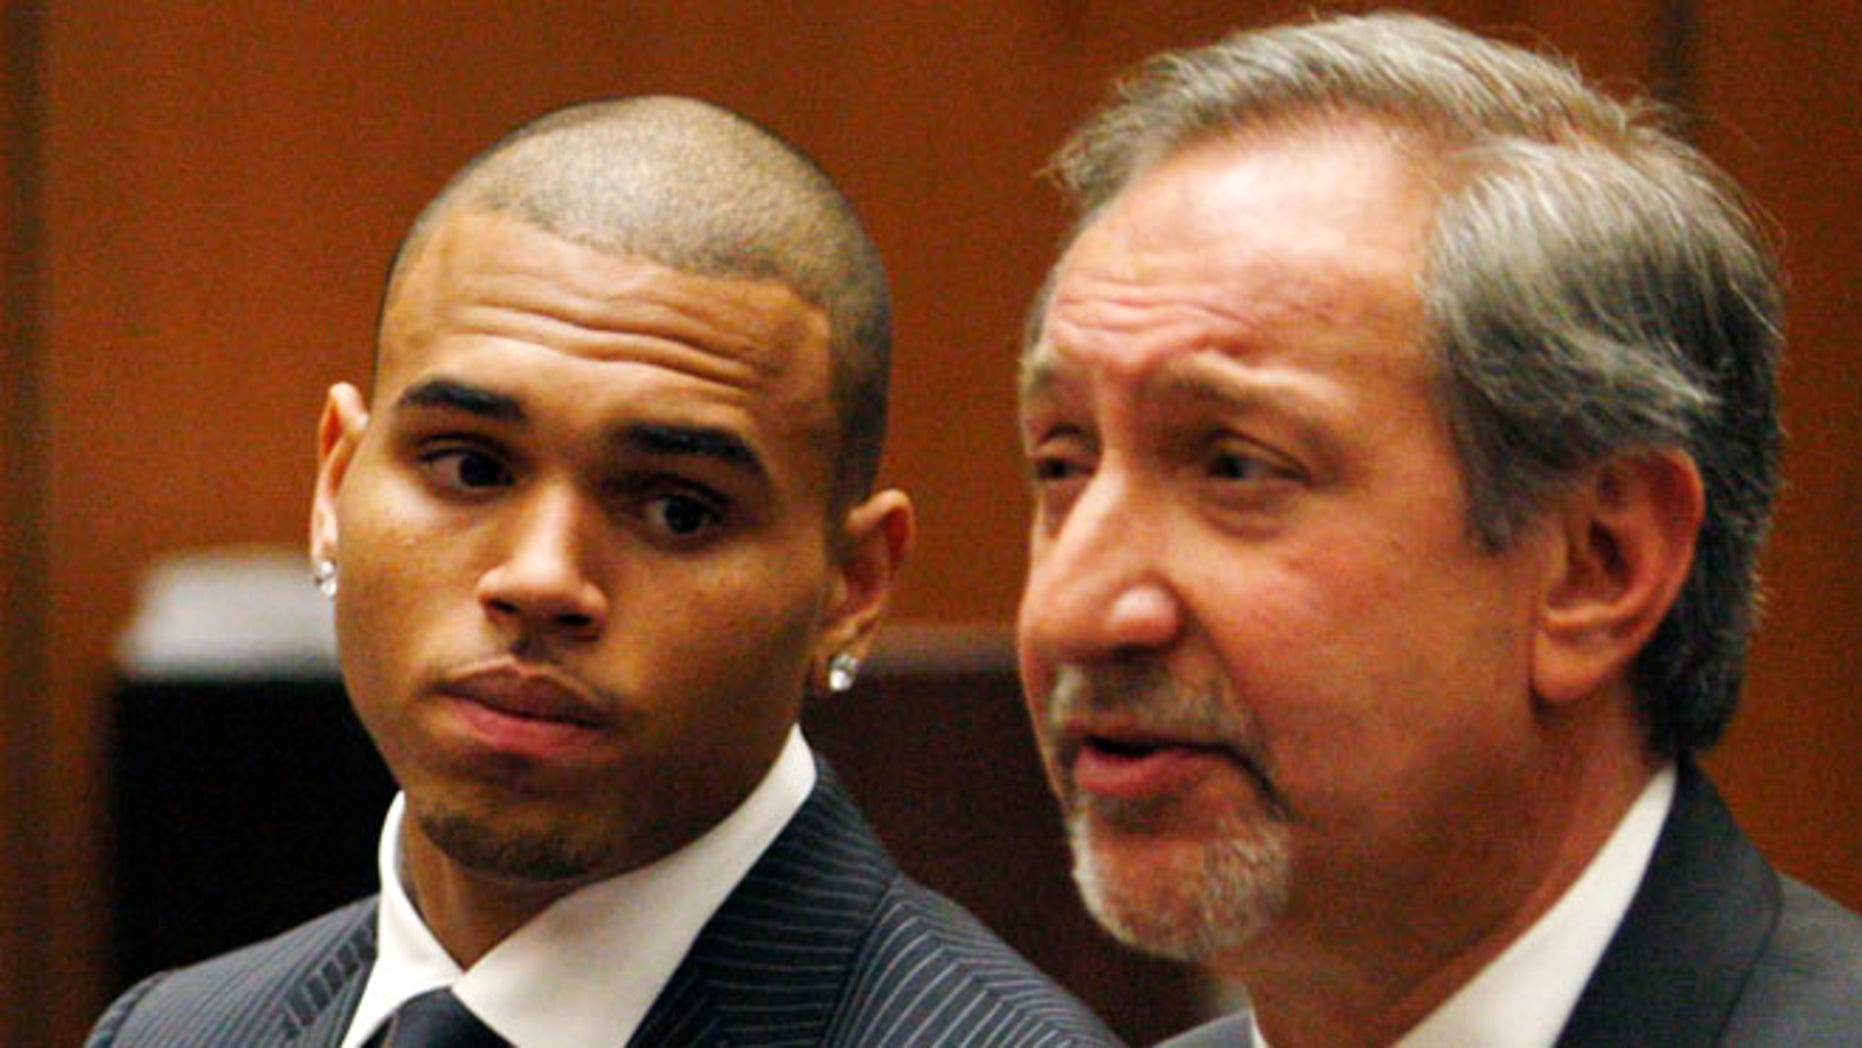 Aug. 25, 2009: In this file photo, Chris Brown looks on alongside his attorney Mark Geragos during his sentencing for assaulting his girlfriend Rihanna, at Los Angeles County Superior Court in Los Angeles.